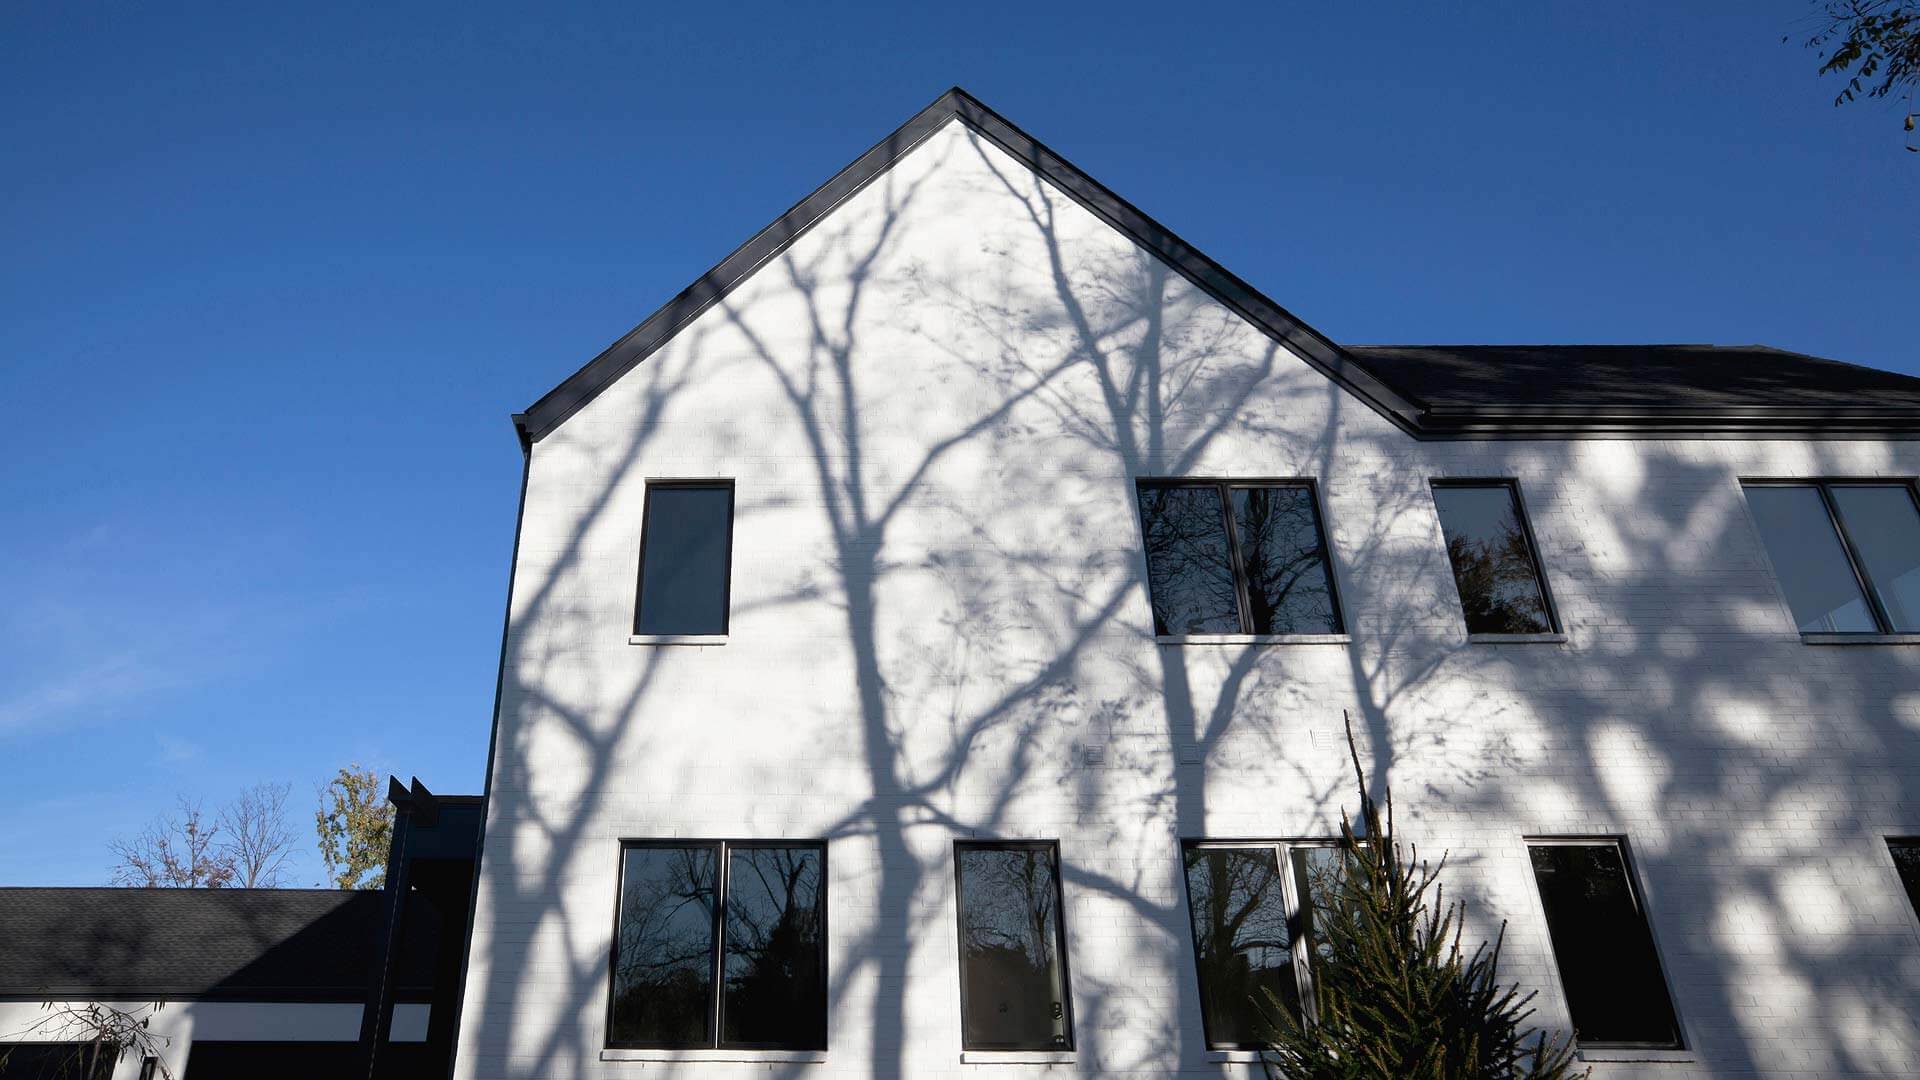 Design blends modern details with traditional gable-roof massing and materials - Towne Oak Estates, Steffe Drive, Carmel, Indiana - Christopher Short, Derek Mills - Indianapolis Architects, HAUS | Architecture For Modern Lifestyles